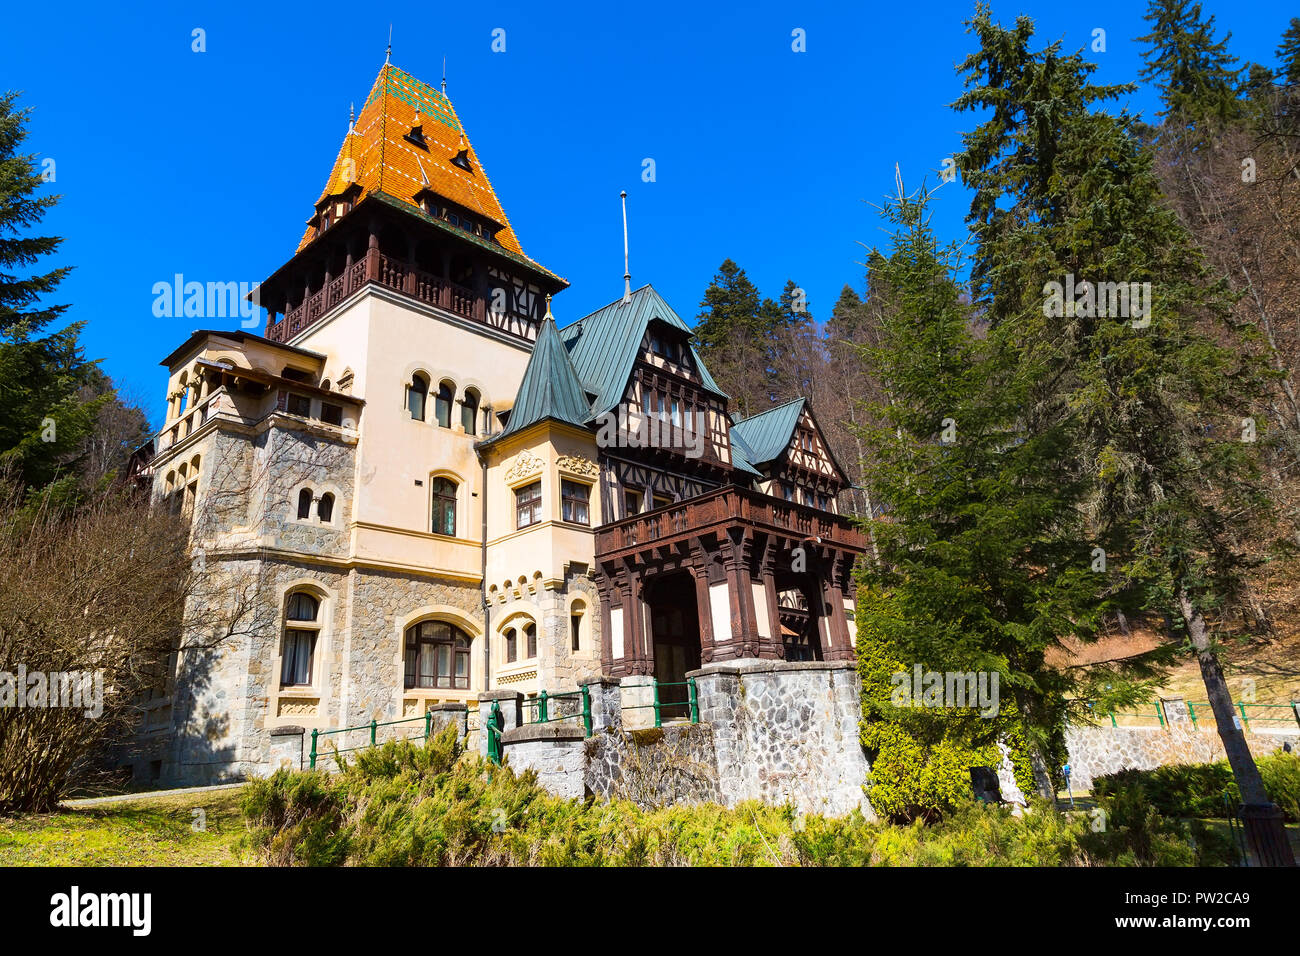 Pelisor castle summer residence in Sinaia, Romania, part of the complex as Peles castle - Stock Image